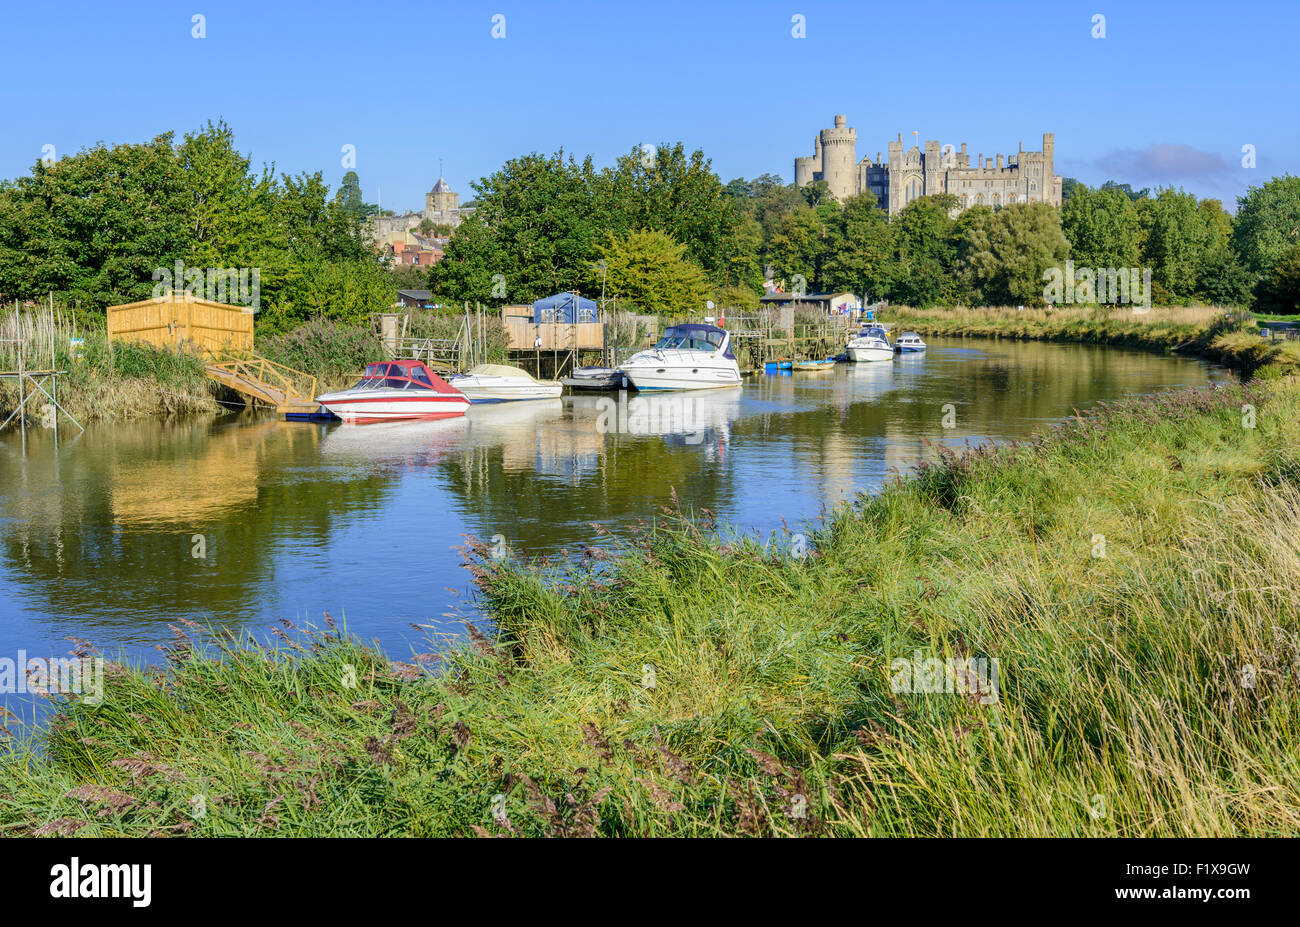 riverside-scene-with-boats-on-the-river-